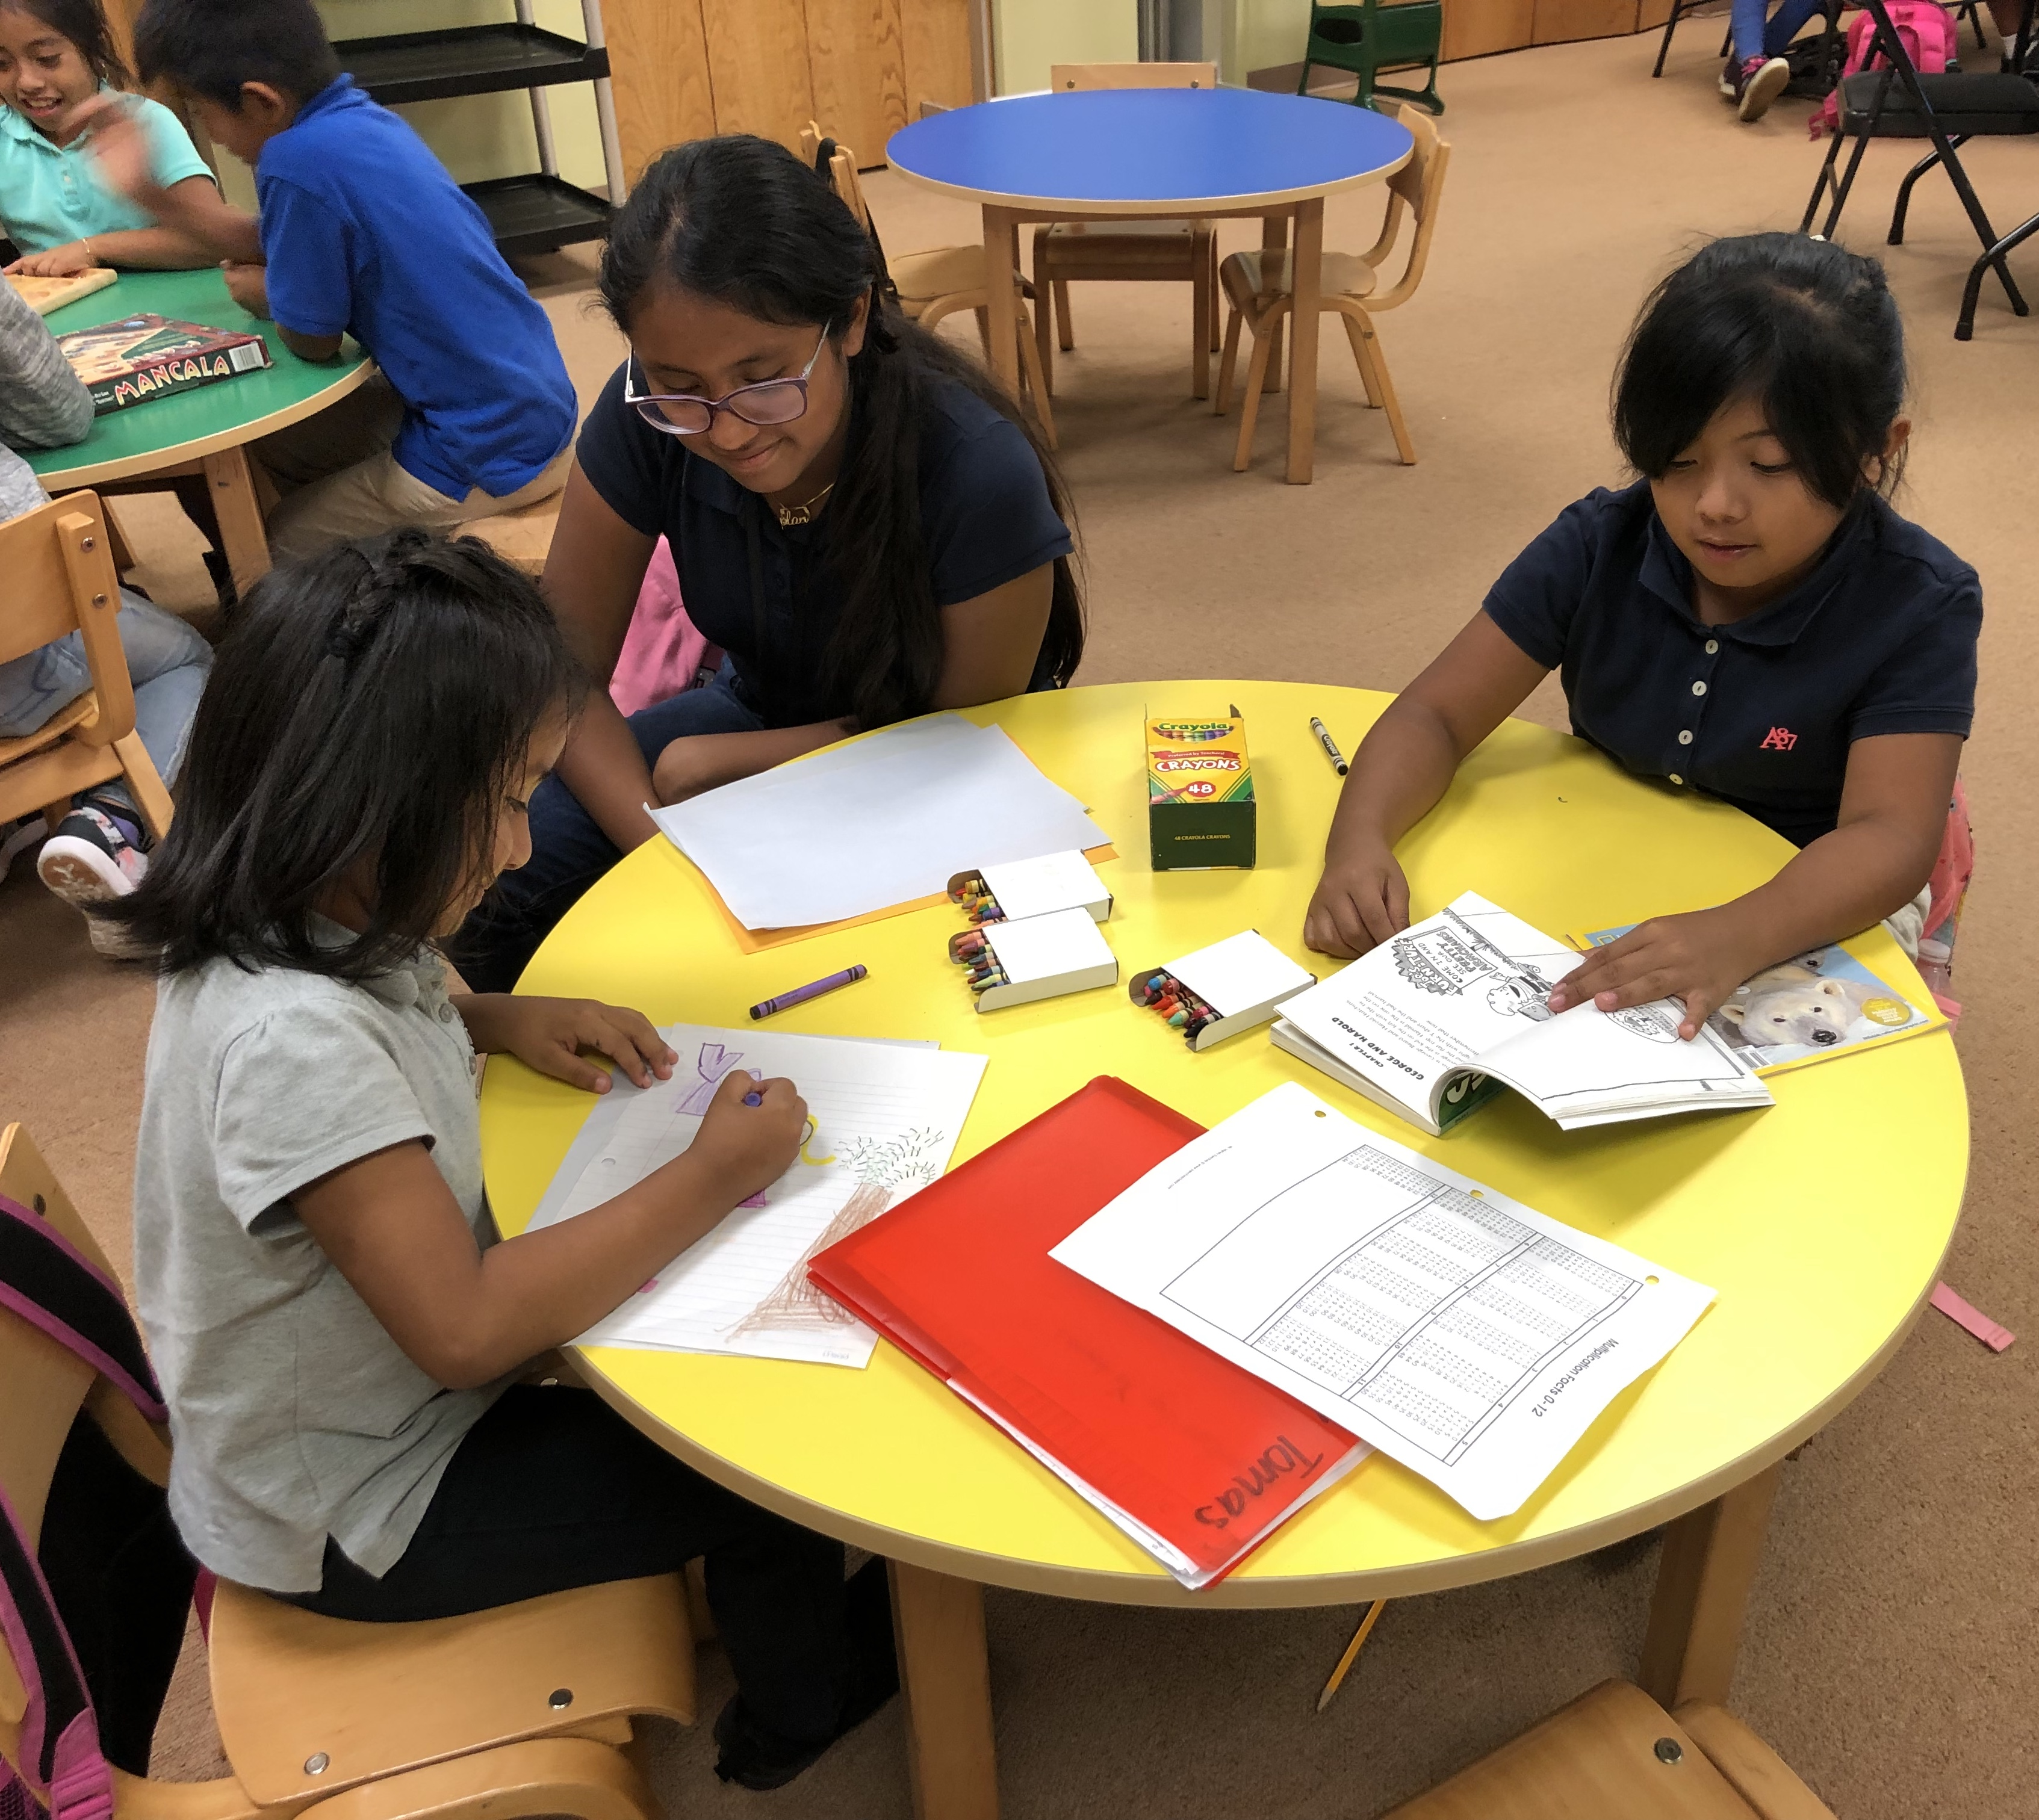 holycross-kids-drawing-at-table